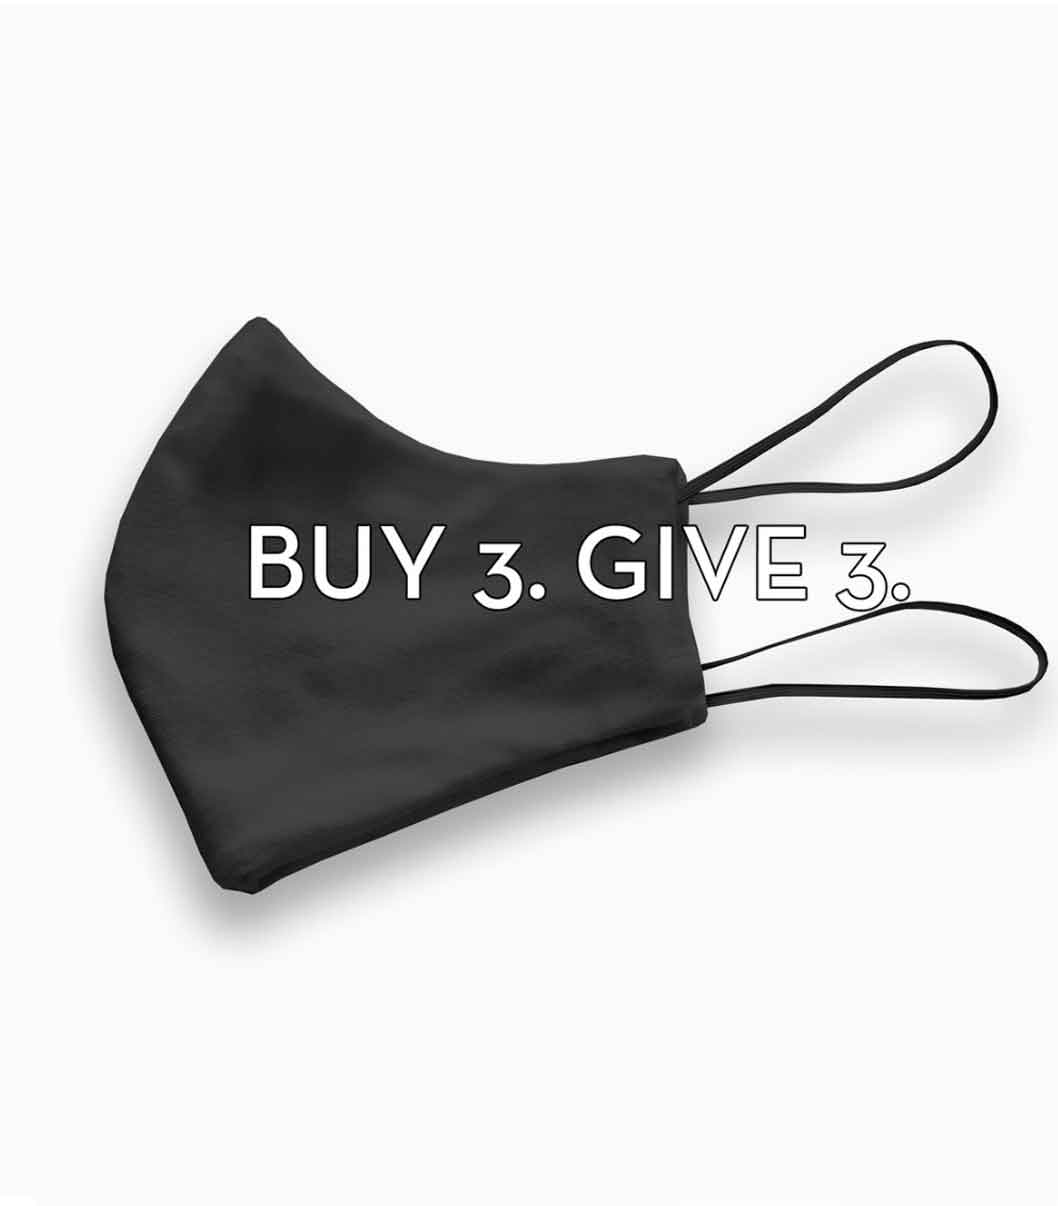 GROCERIES APPAREL REUSABLE SUSTAINABLE FACE MASK US good fashion guide ECOLOOKBOOK